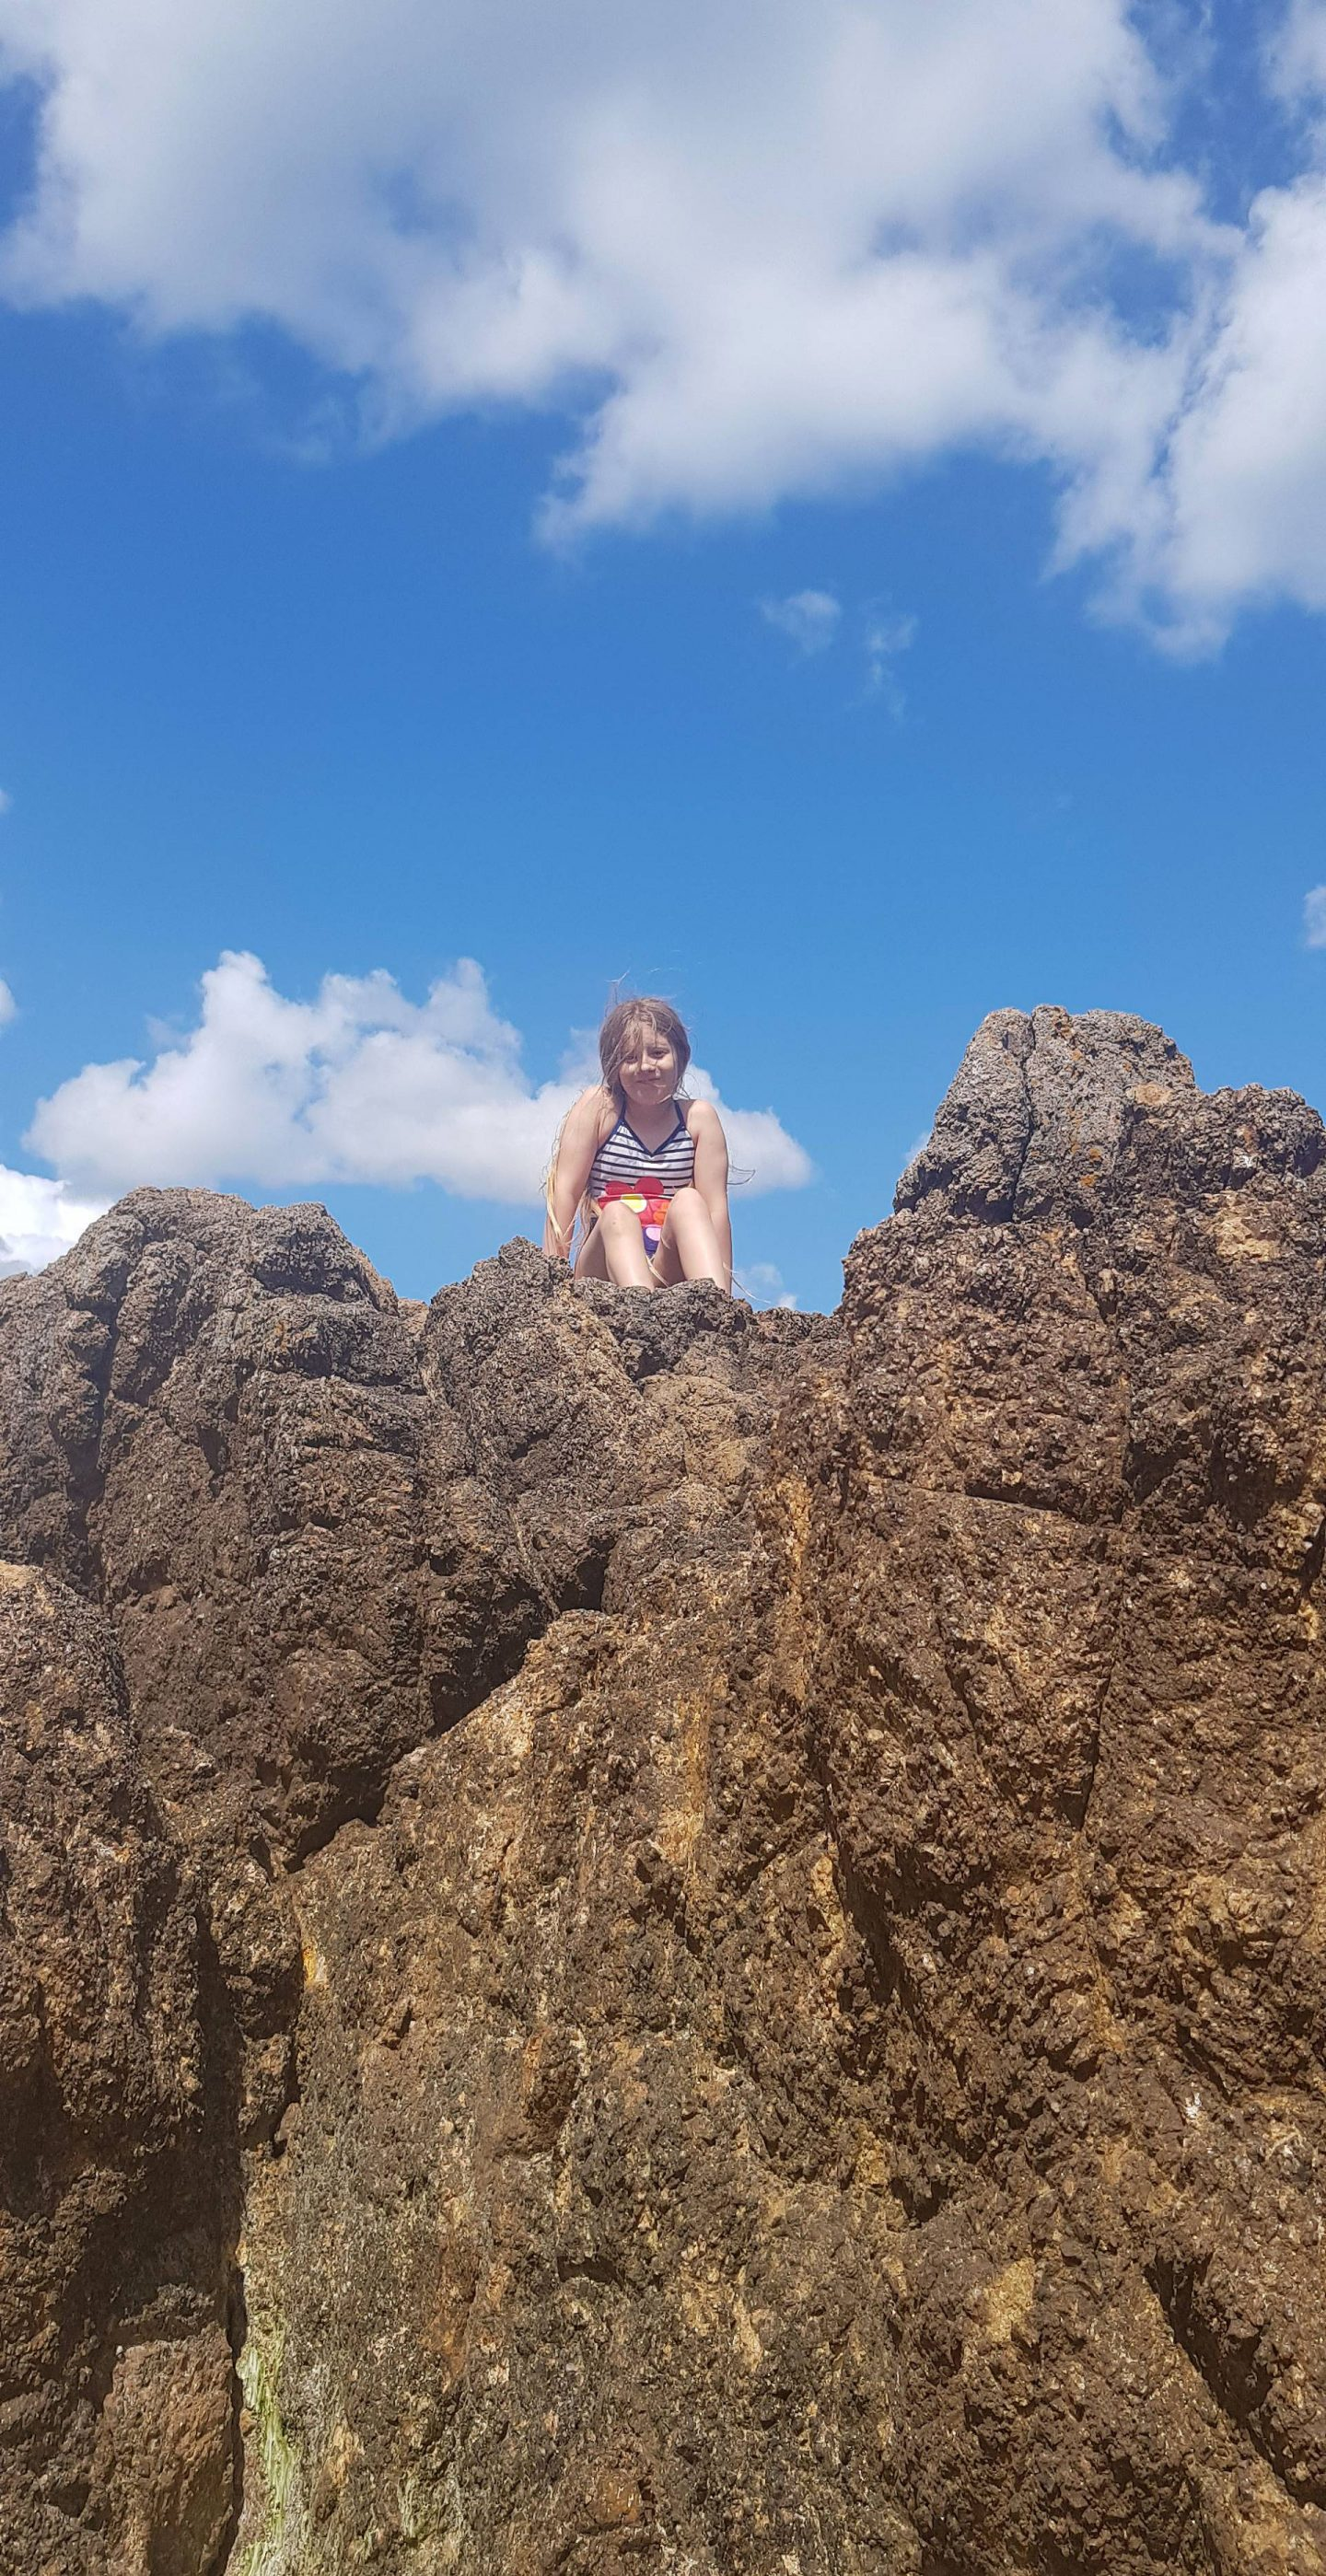 Summer Trip to Brittany, Isobel on the rocks